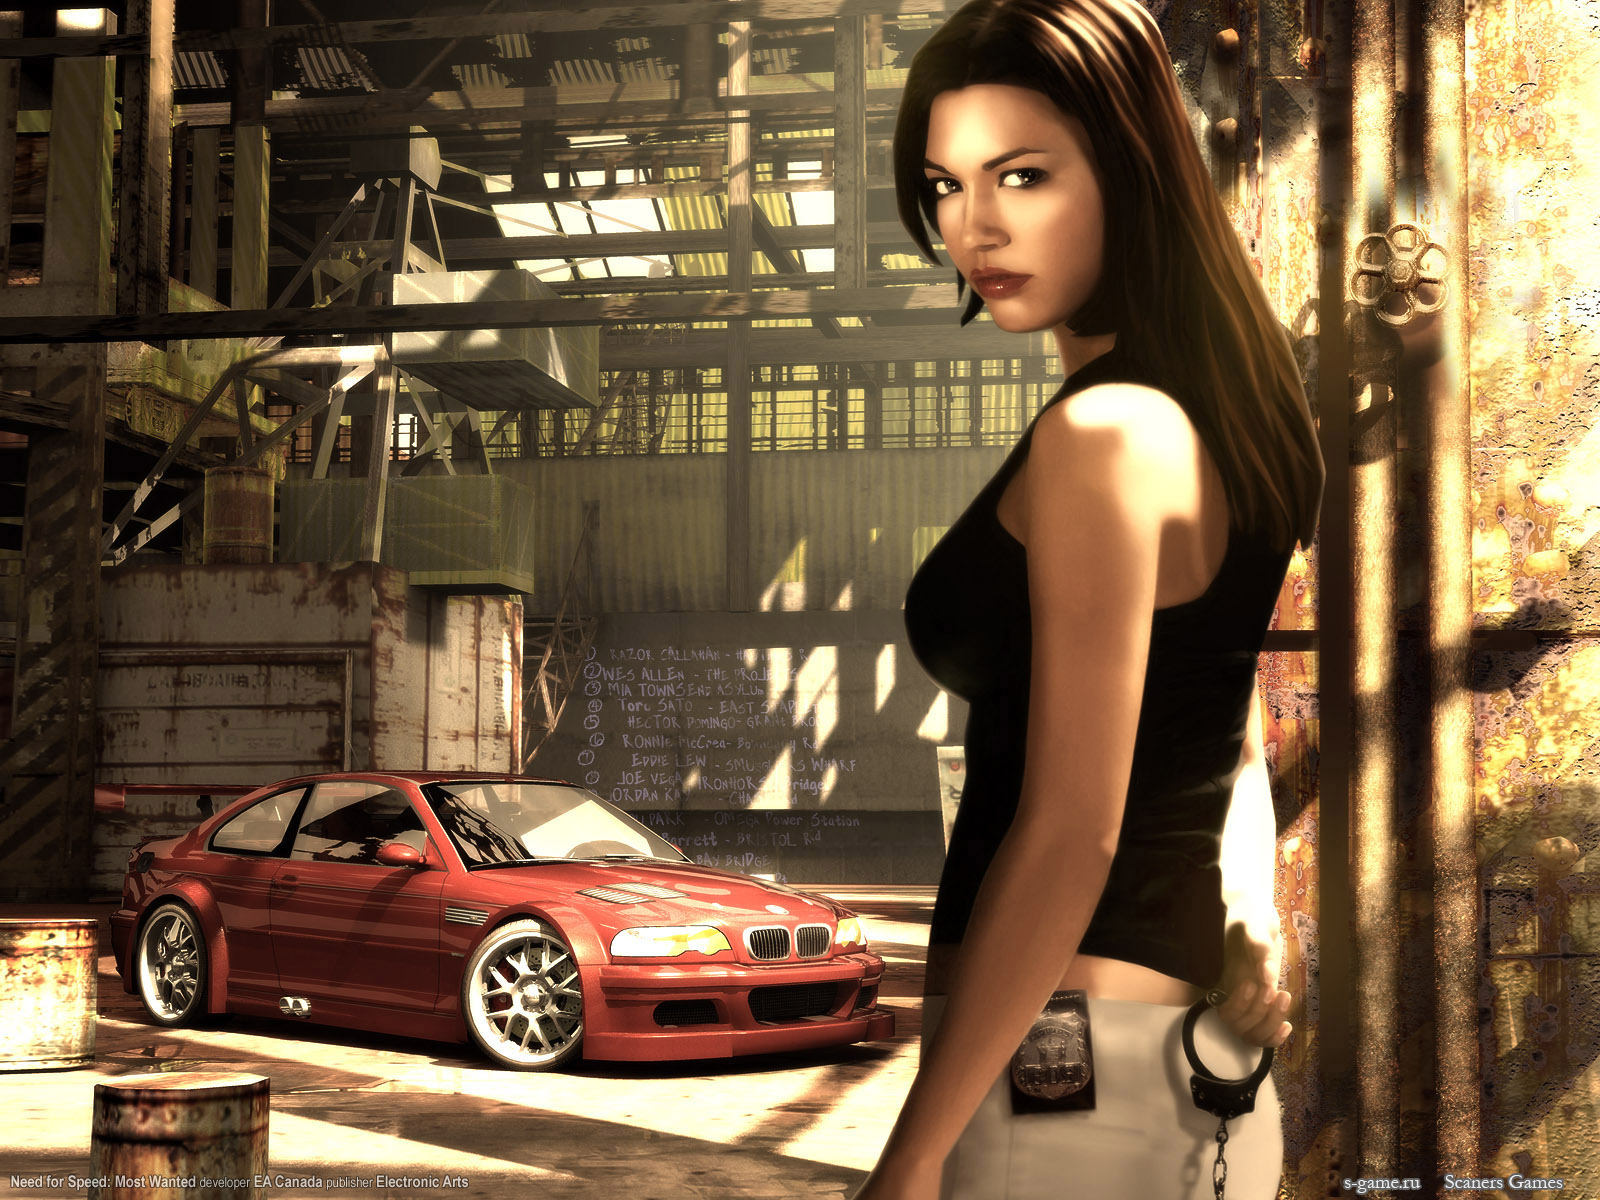 click to see world: need for speed most wanted wallpaper